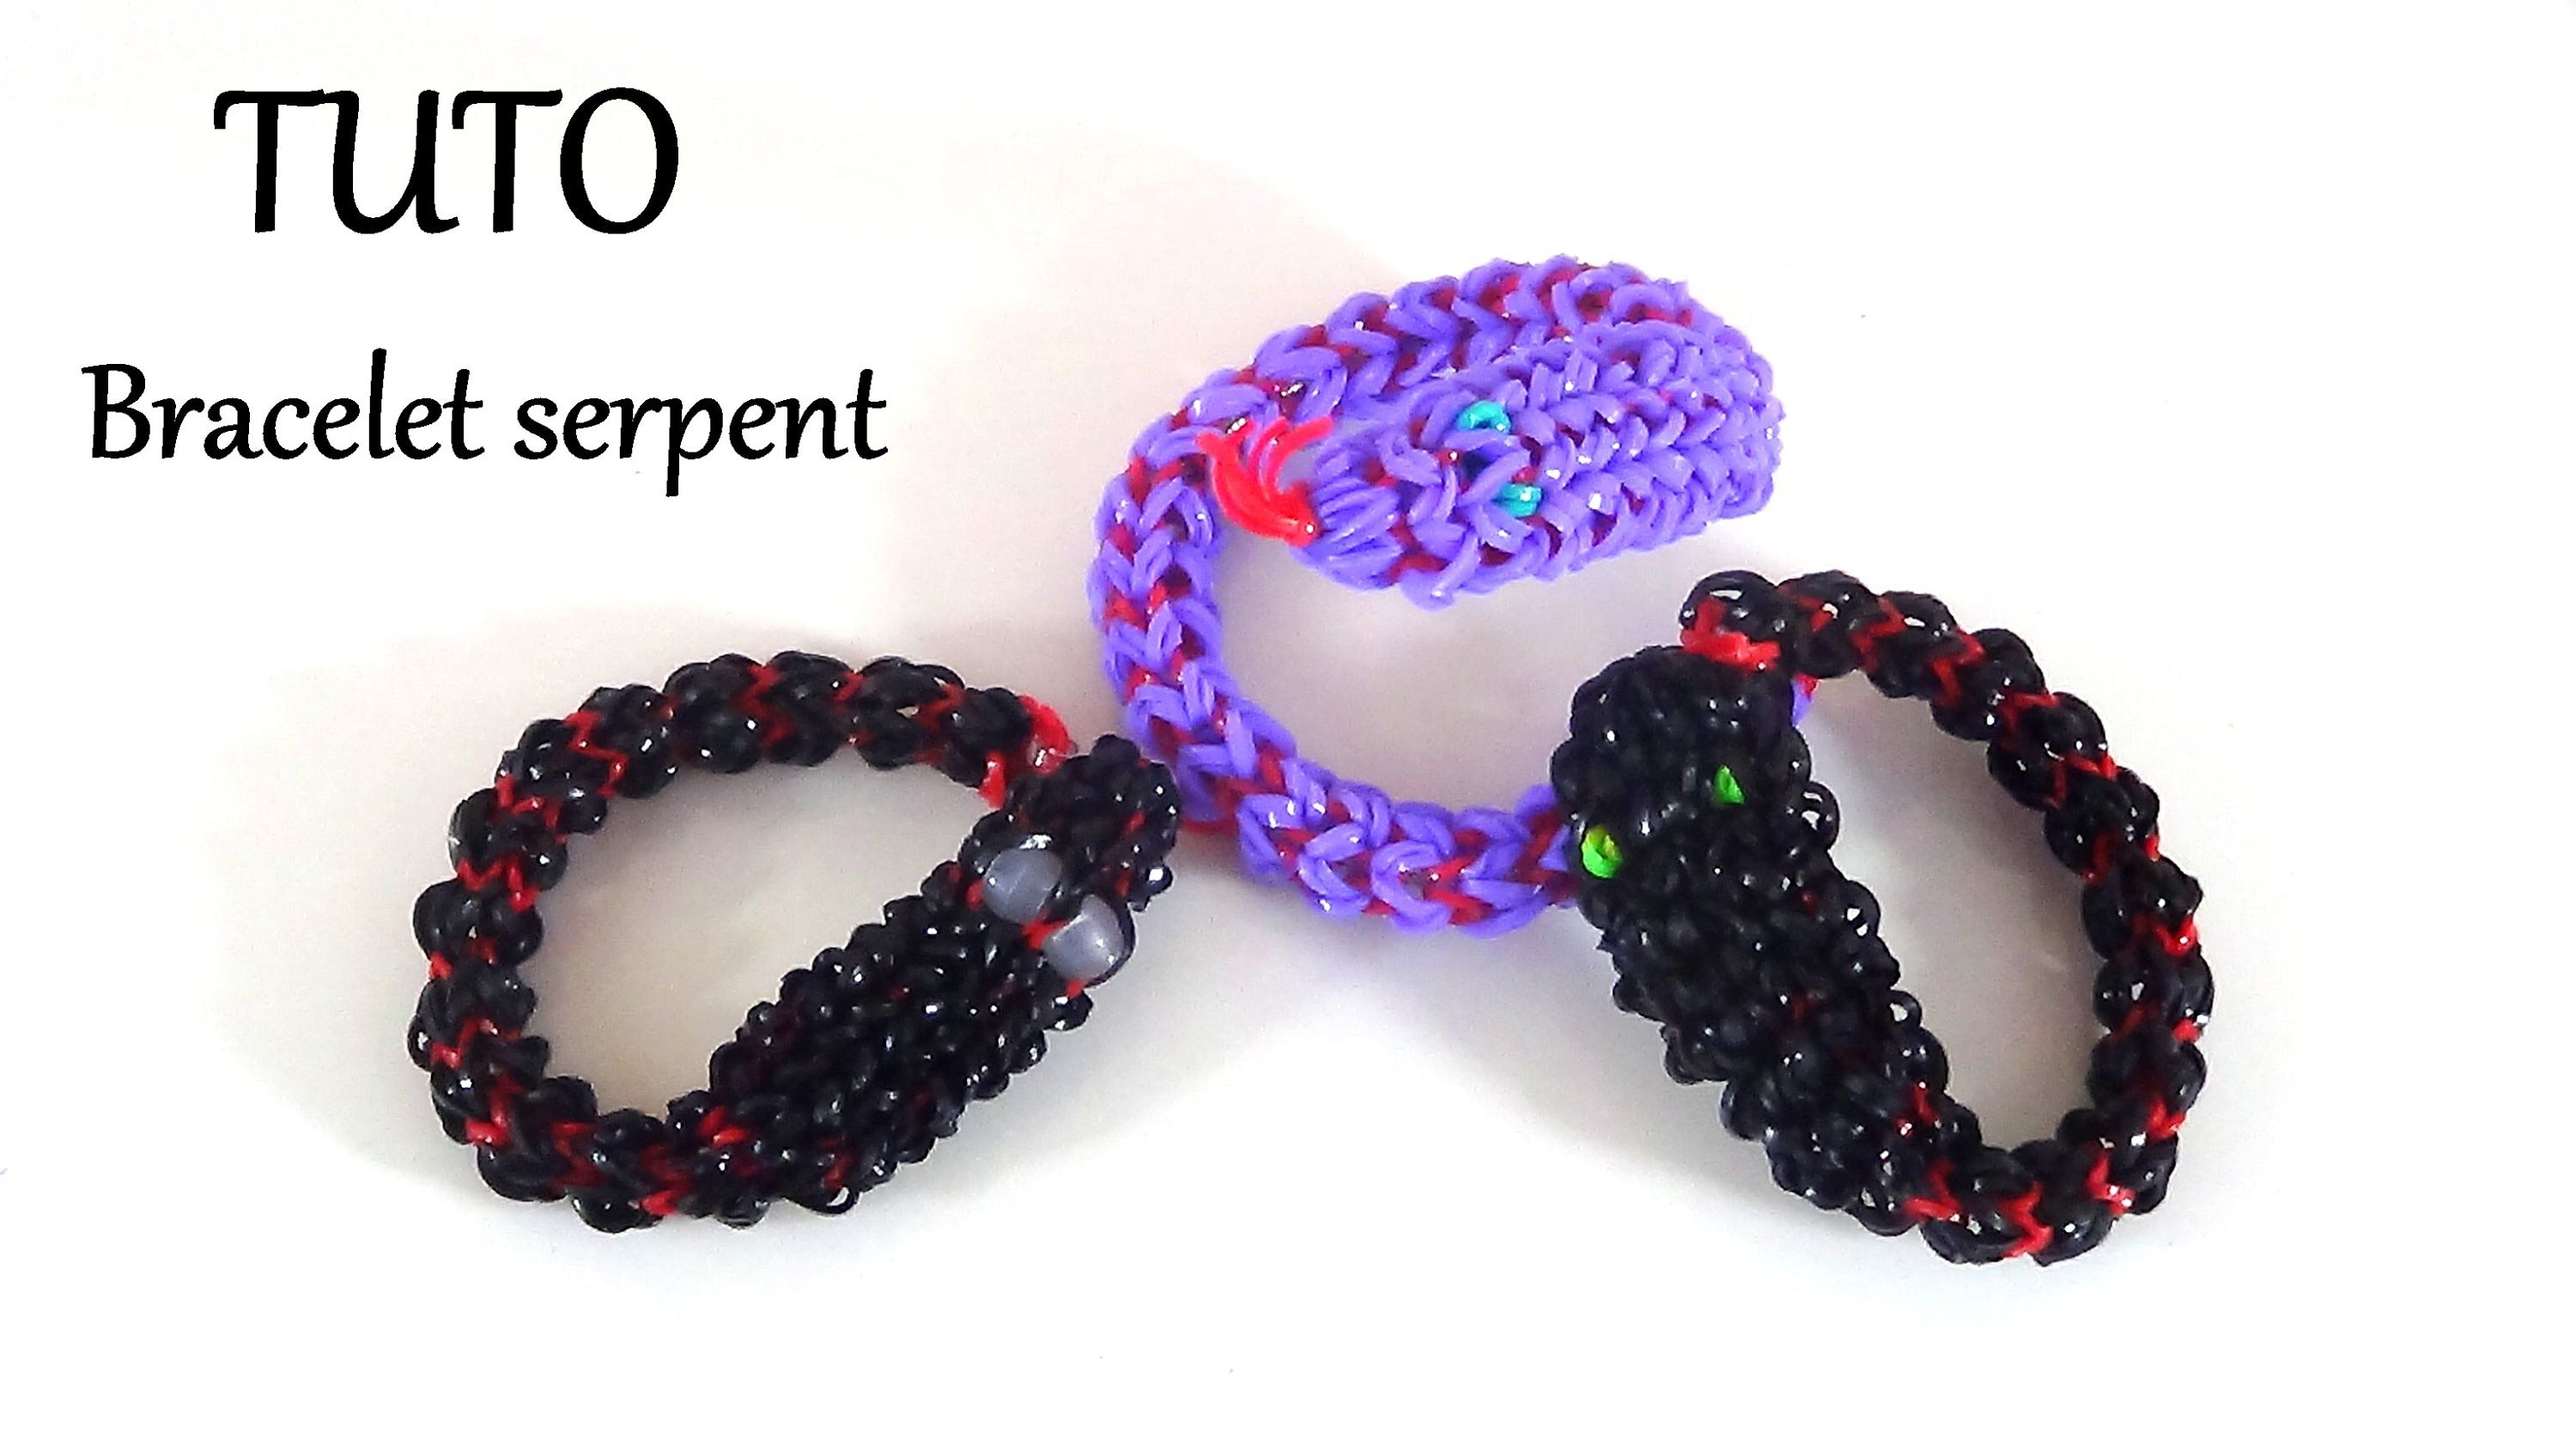 tuto bracelet serpent en lastique rainbow loom creations pinterest bracelet serpent. Black Bedroom Furniture Sets. Home Design Ideas